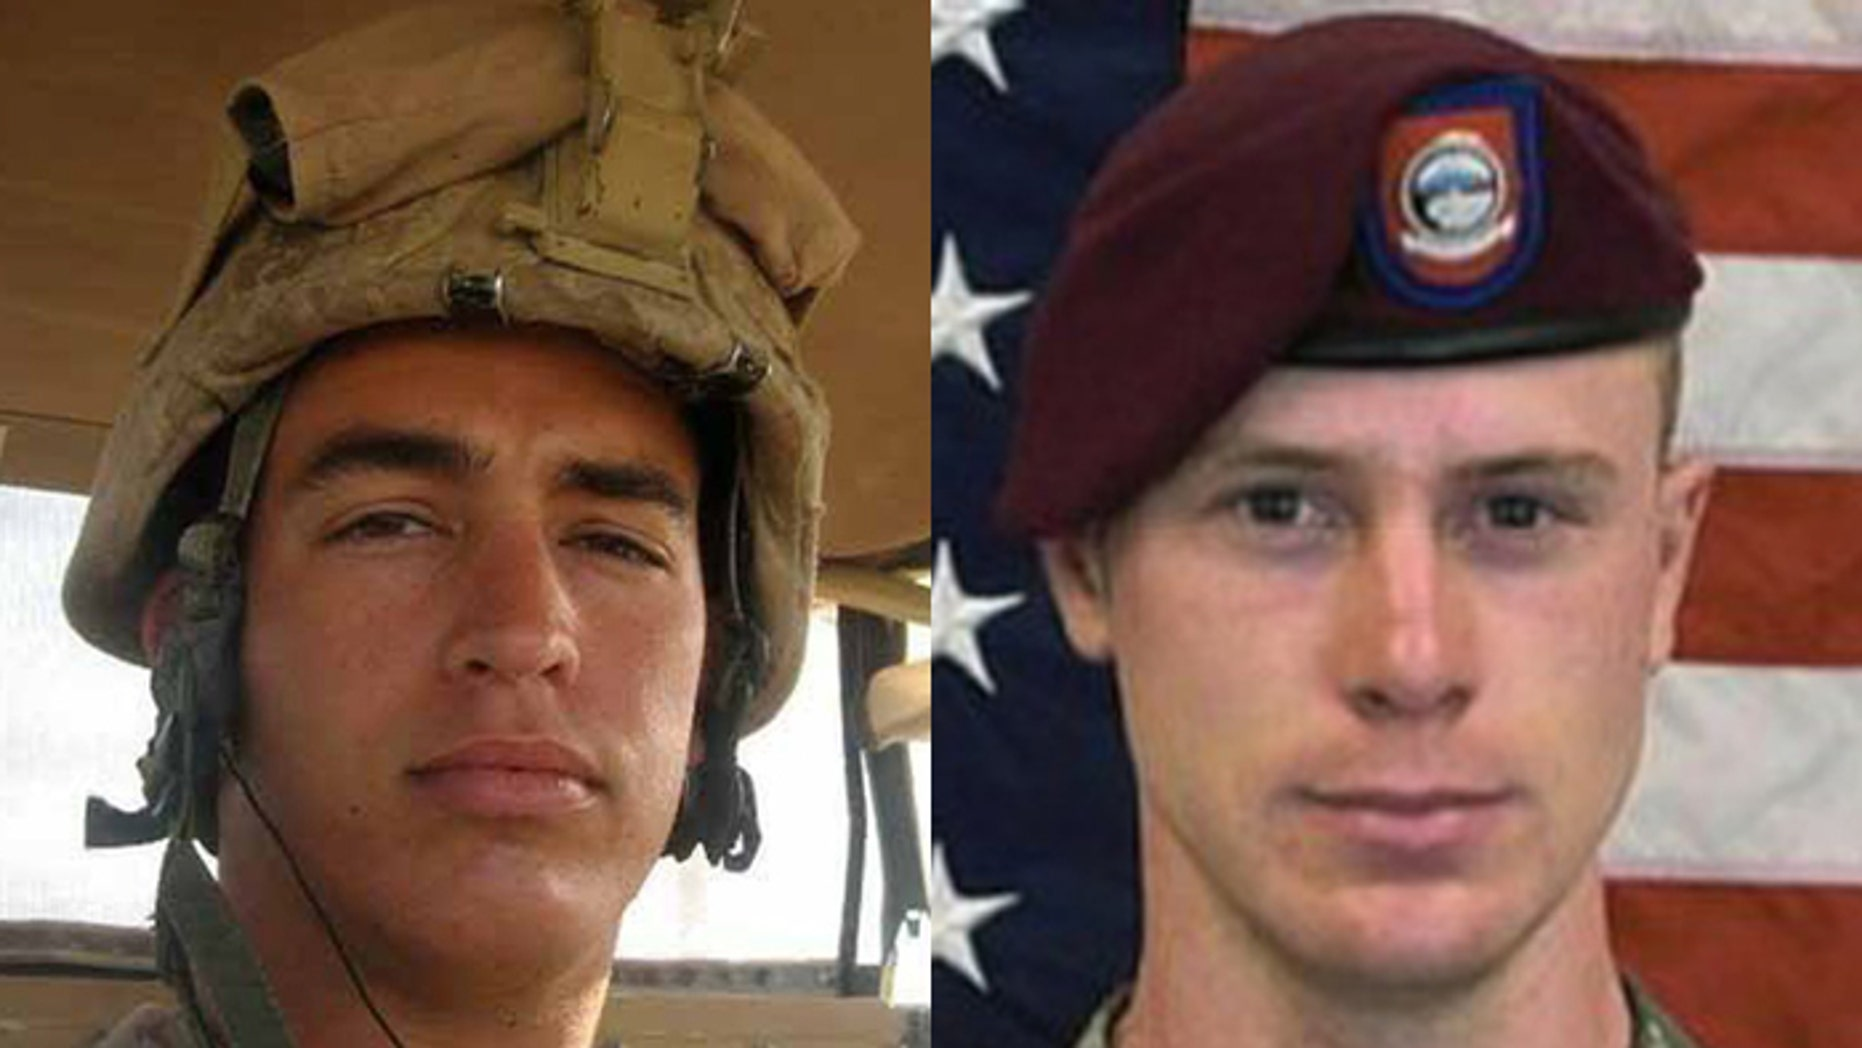 Supporters of Marine Sgt. Andrew Tahmooressi (l.), say the Obama administration has forgotten him while going to great lengths to free Army St. Bowe Bergdahl, (r.).